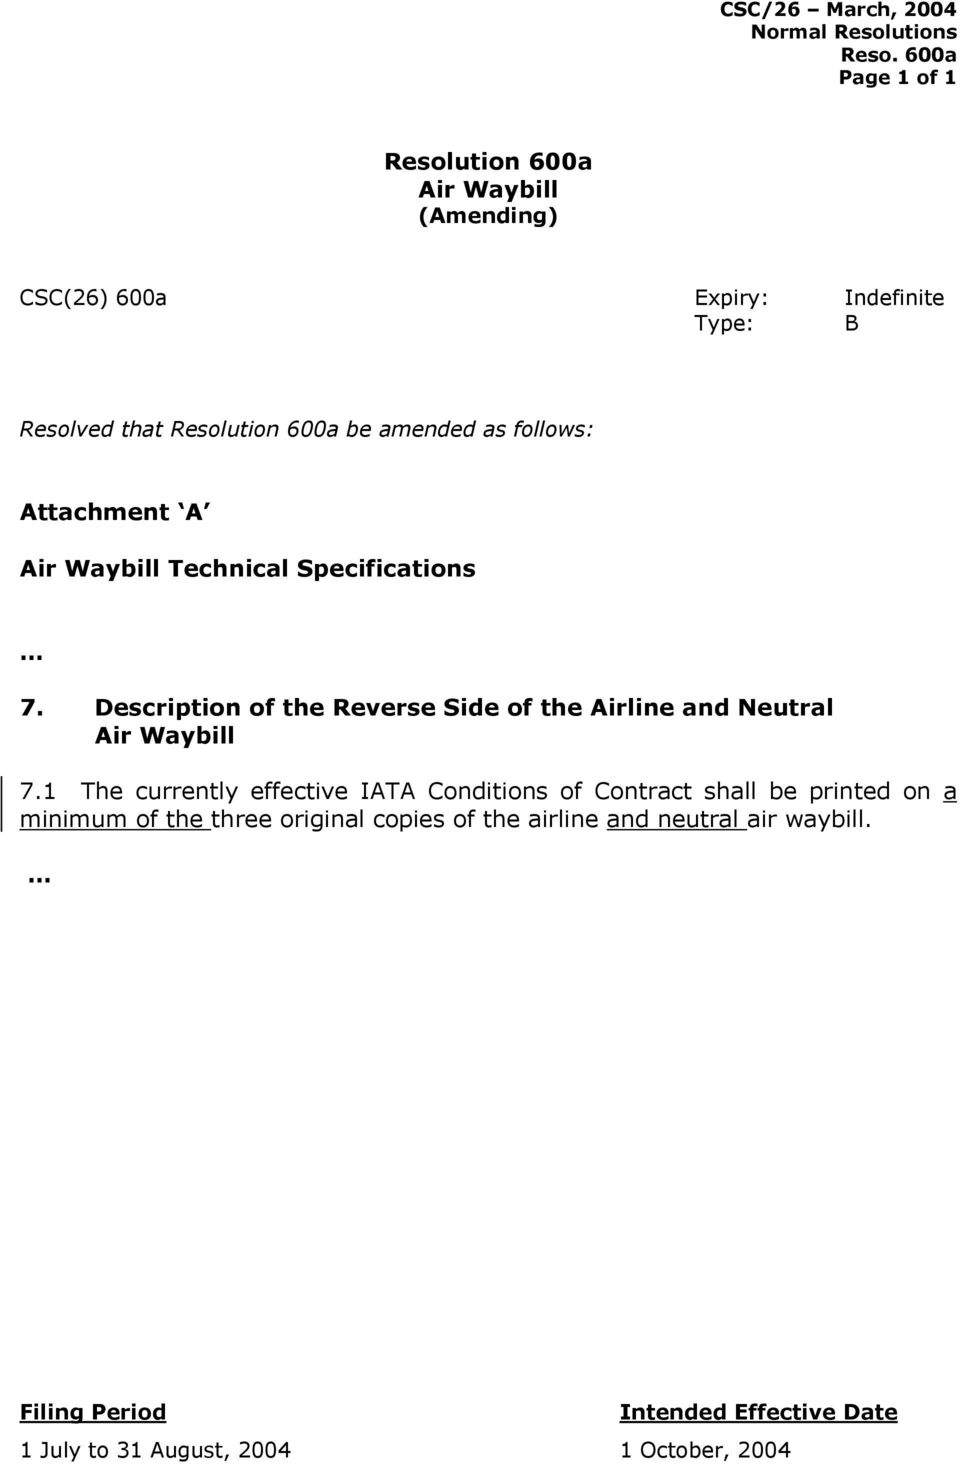 Description of the Reverse Side of the Airline and Neutral Air Waybill 7.